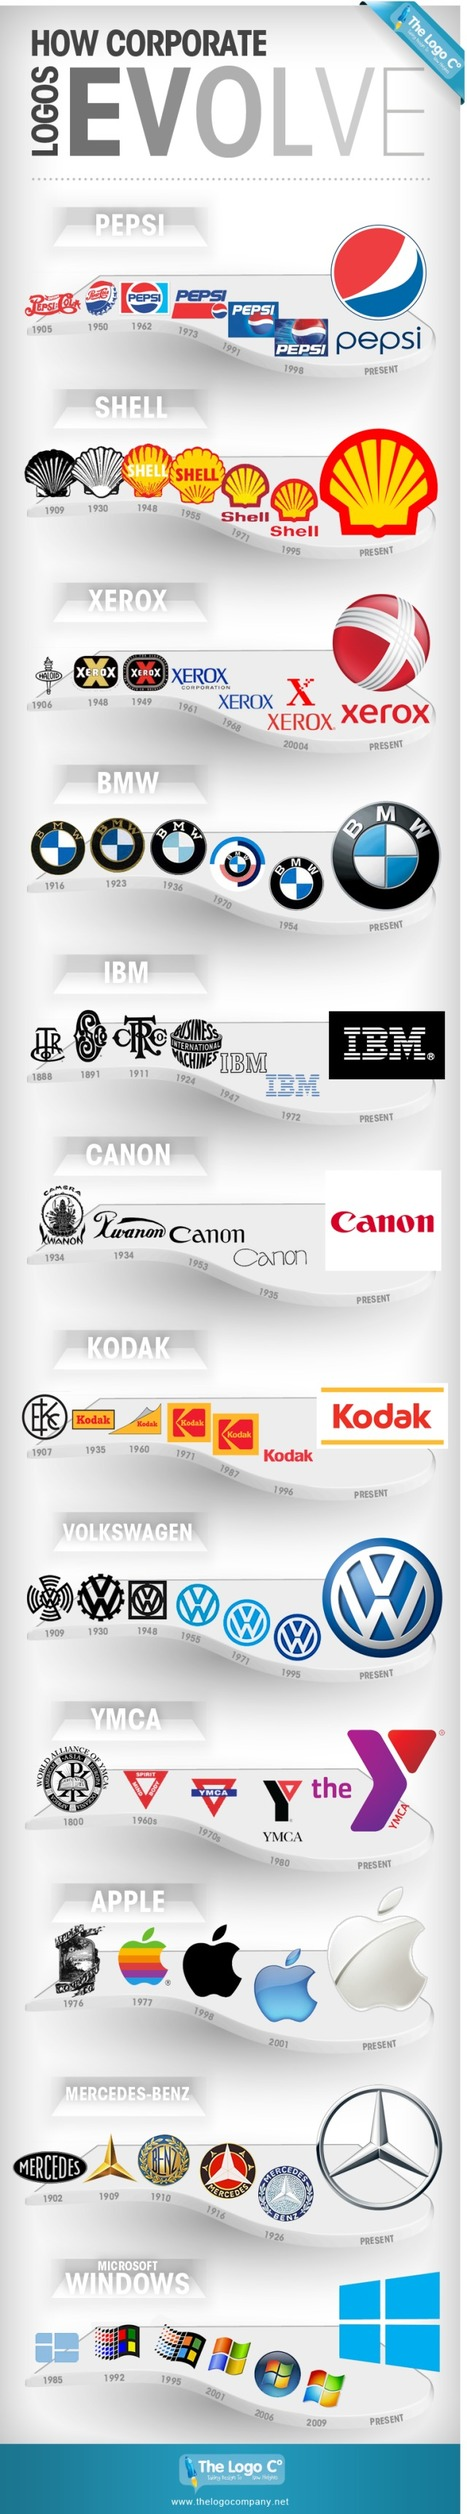 How Logos Change Over the Years #Infographic | Knowledge for Entrepreneurs | Scoop.it